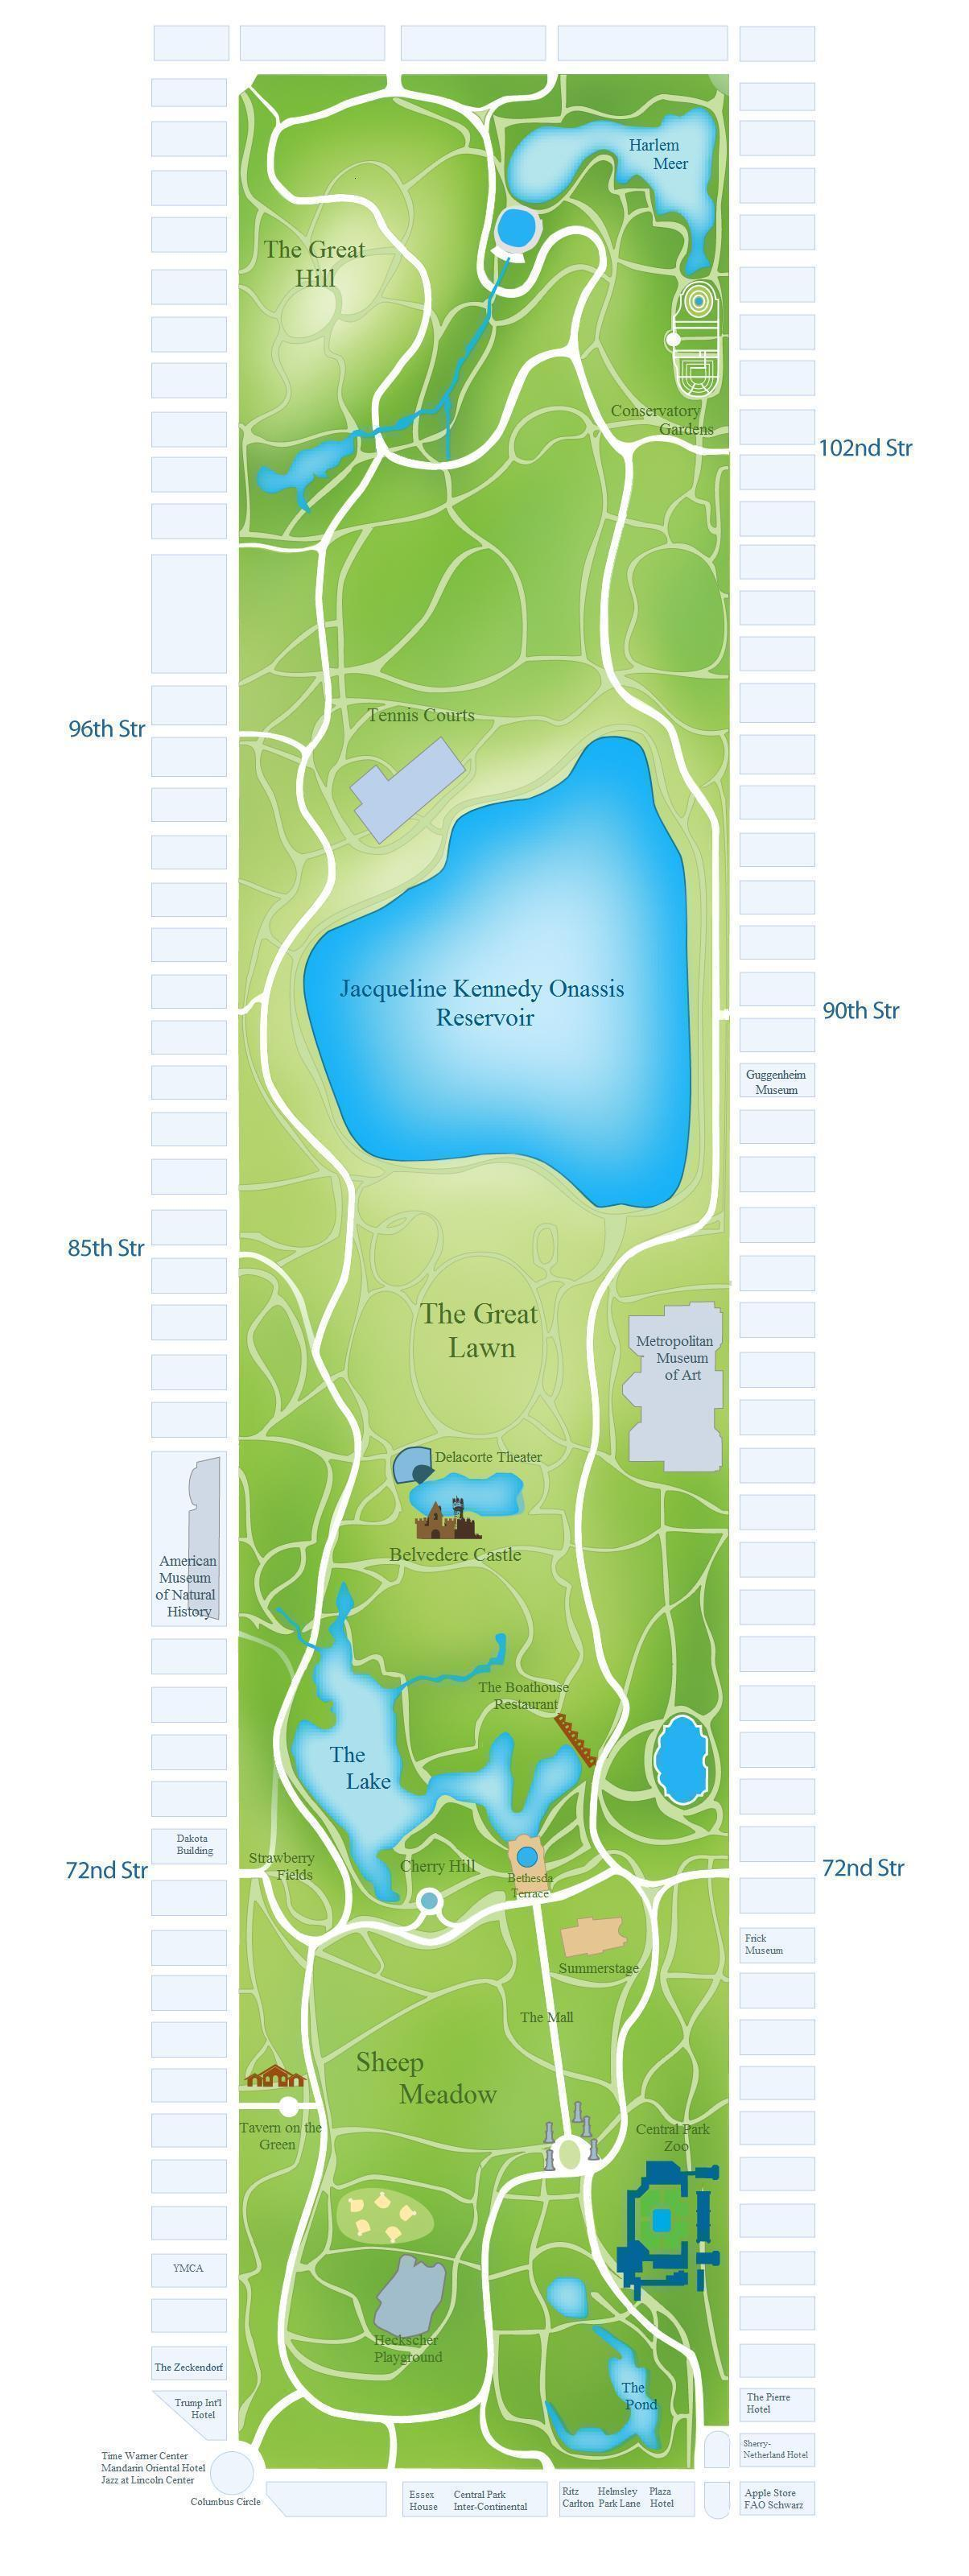 Central park map New York